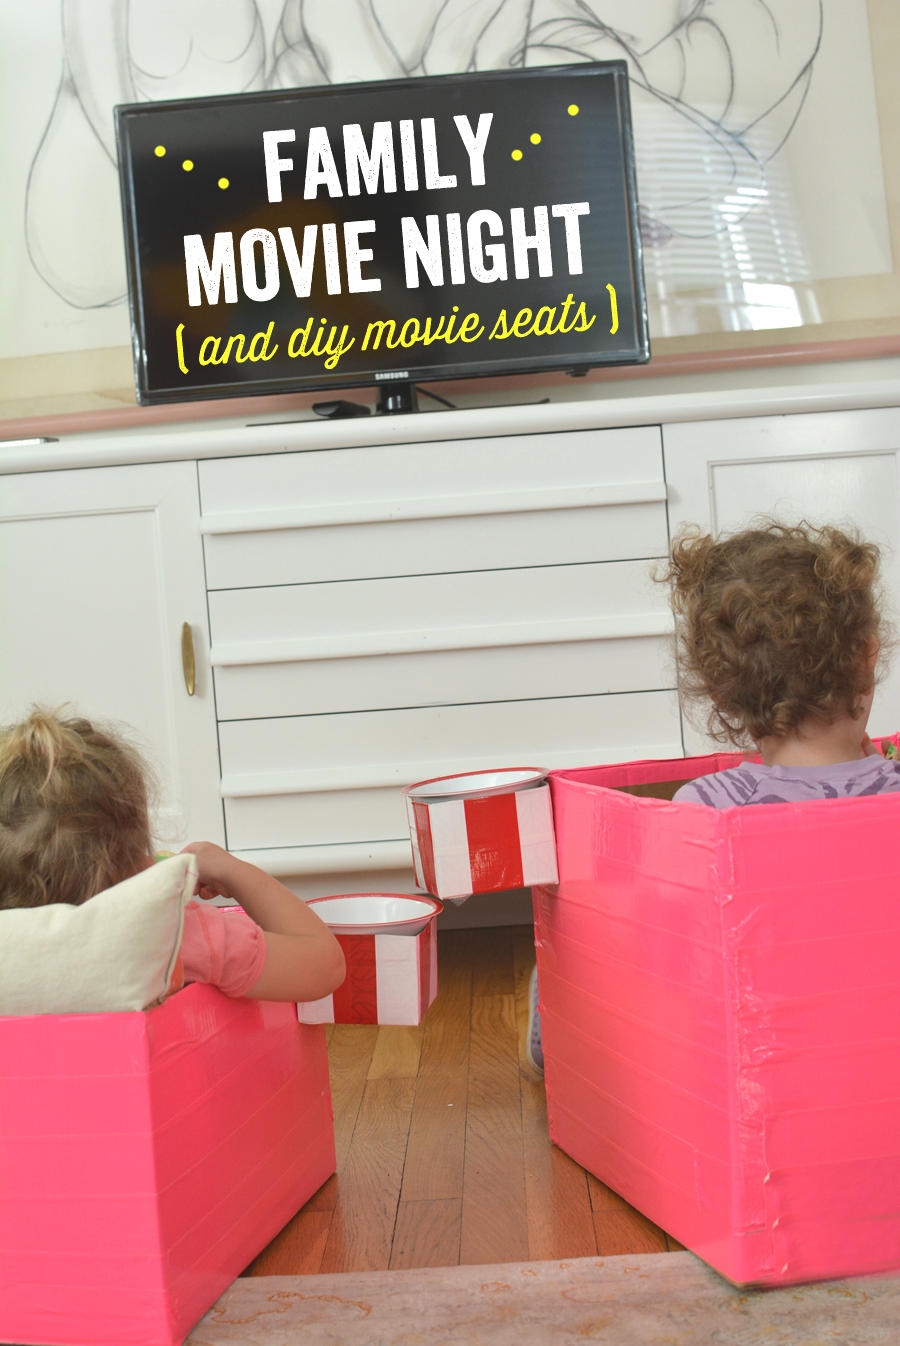 Reserved Seating: Have a DIY Family Movie Night